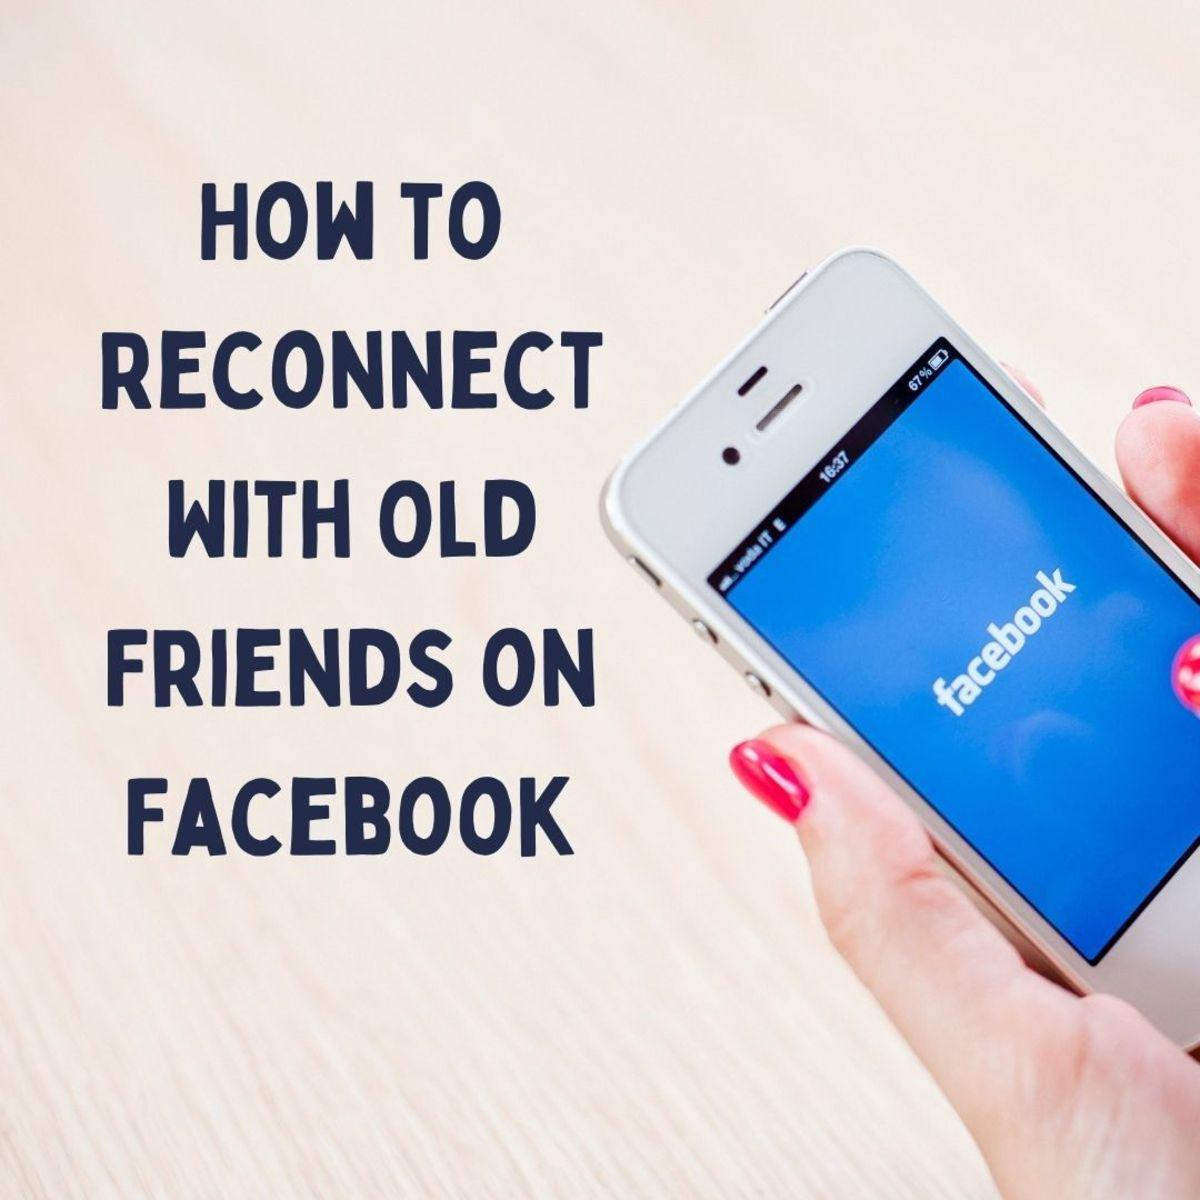 Find out how you can locate and reconnect with old friends on Facebook.